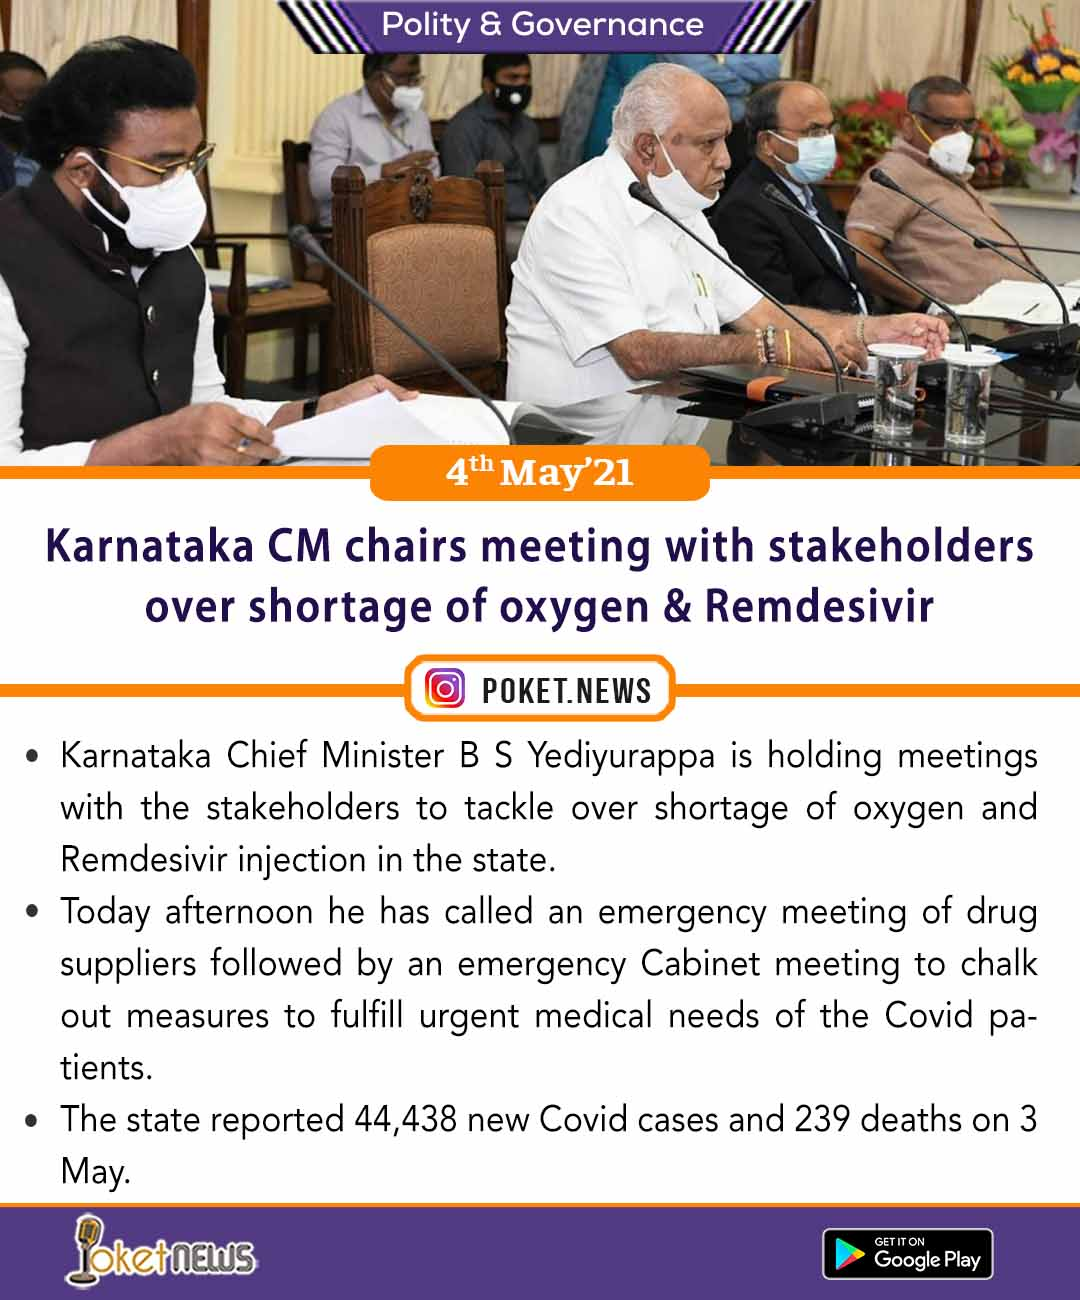 Karnataka CM chairs meeting with stakeholders over shortage of oxygen & Remdesivir